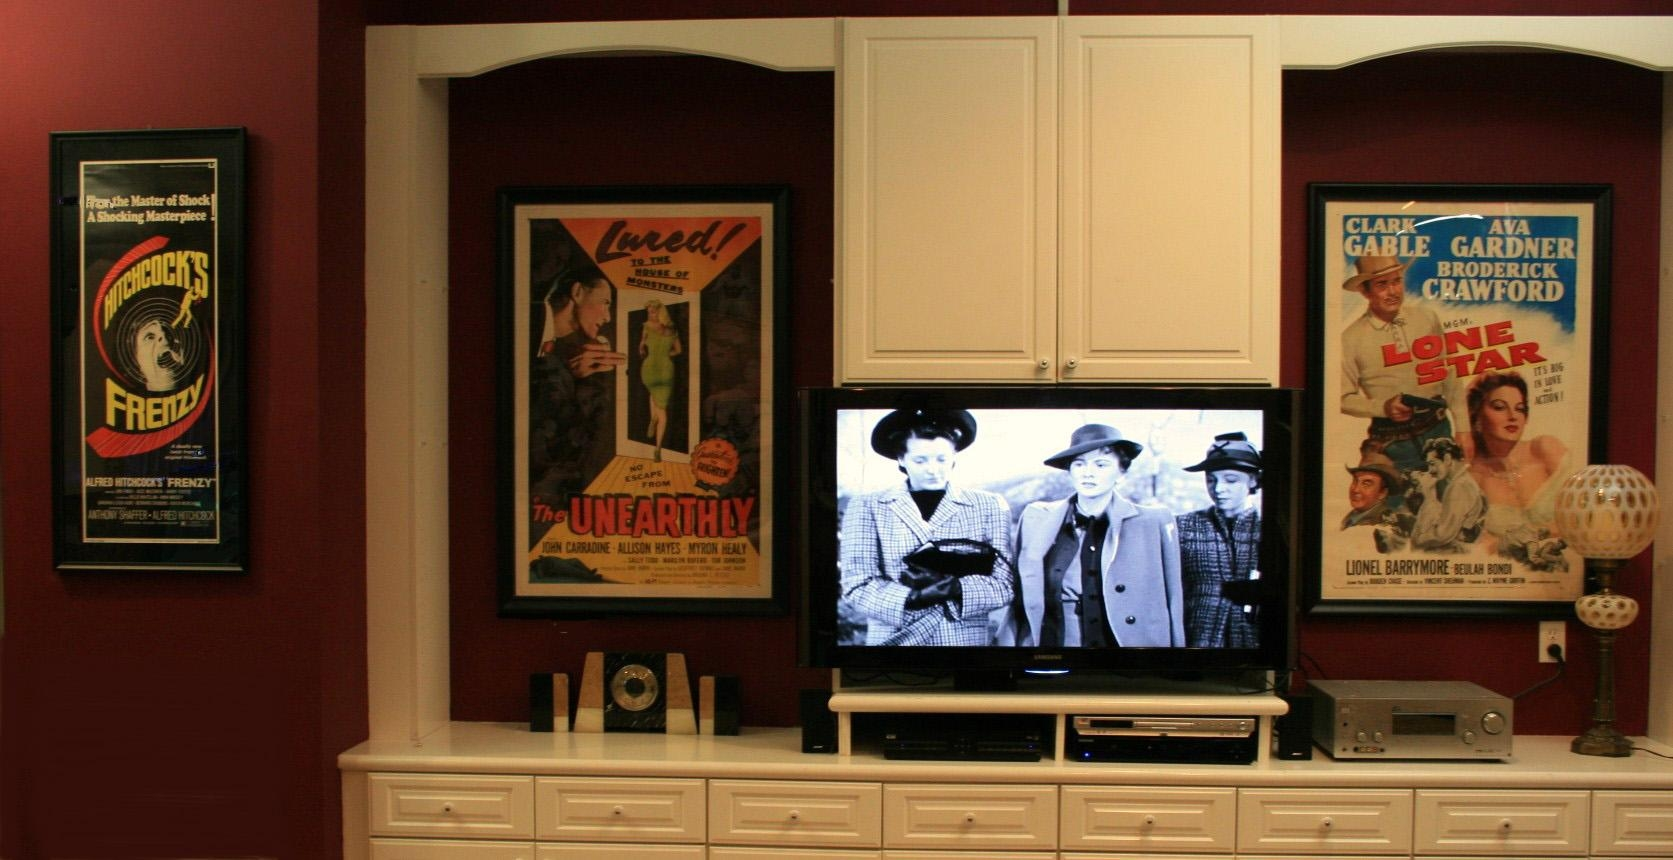 Media Room Movie Art Pertaining To Media Room Wall Art (Image 13 of 20)